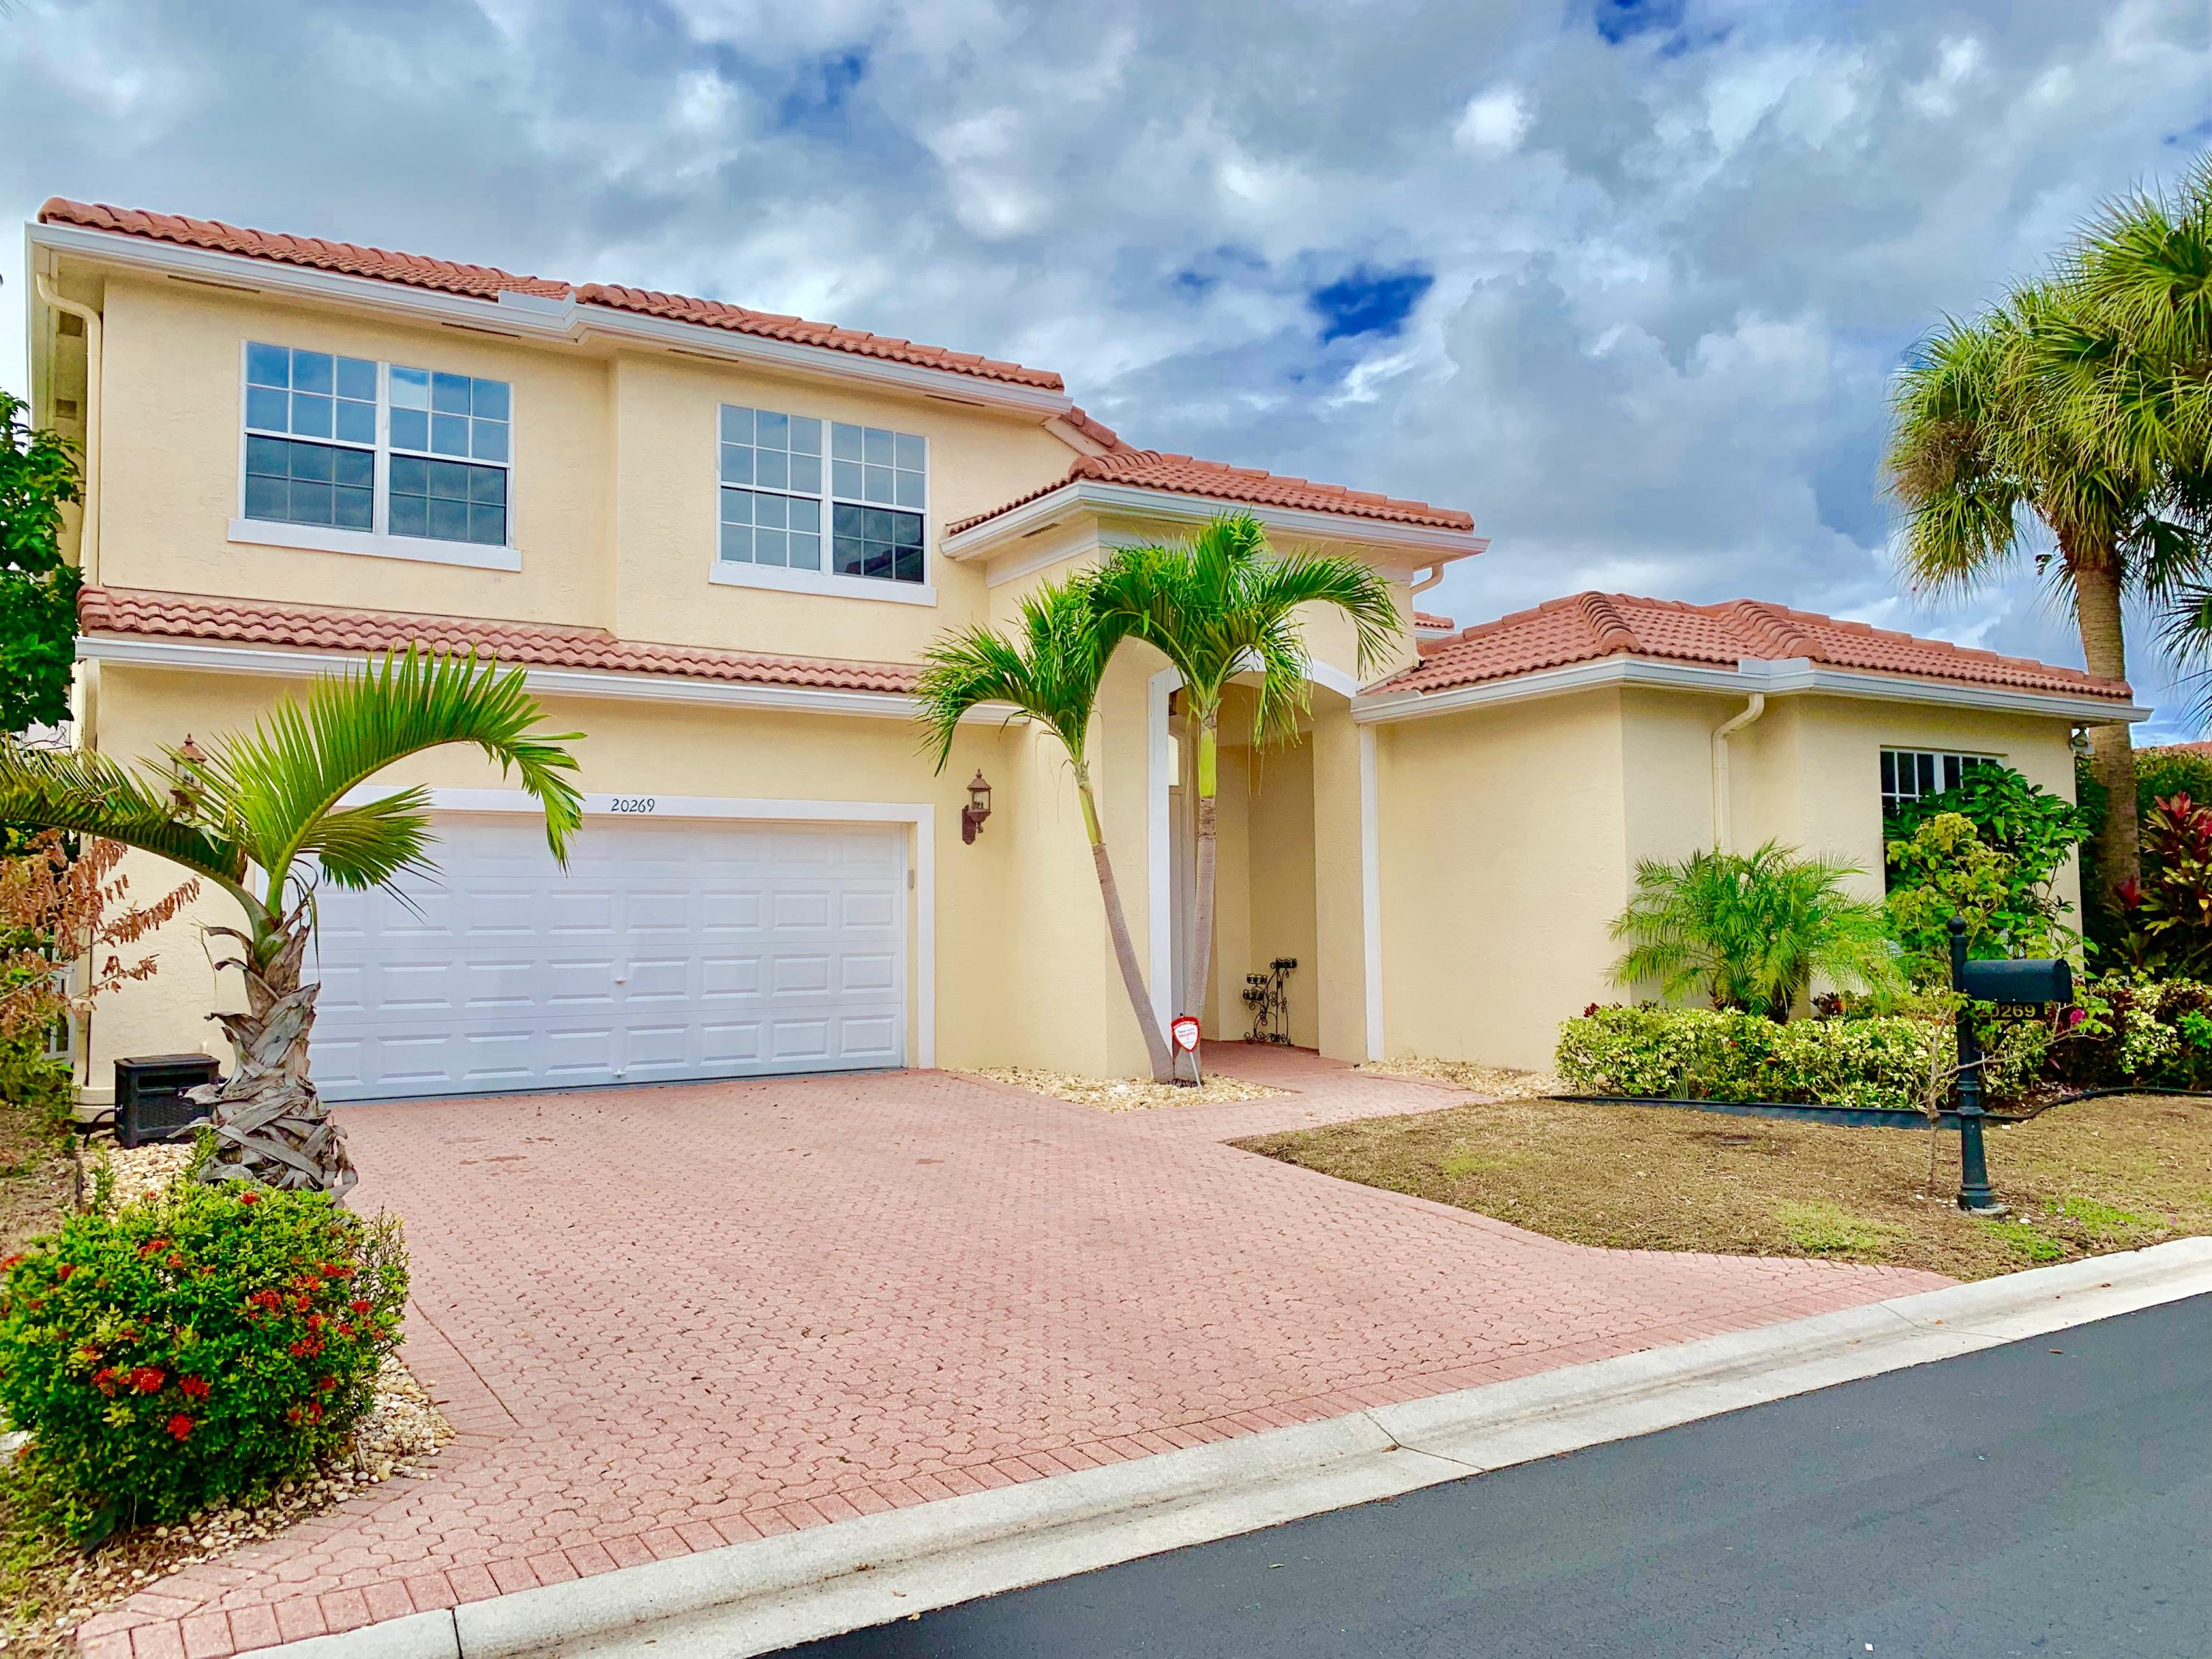 Spectacular 3700 total sq ft courtyard pool home! 5 bedrooms 3.5 baths w/2 car garage. Main house features 4 bedrooms all upstairs including master bedroom. Upstairs laundry room. Spacious family room opens to large private pool/patio area. Beautiful crown moldings.  Stainless appliances and granite countertops.  Separate guest house with full bathroom.  HOA fee includes cable with HBO, and internet. Community amenities include amazing resort style clubhouse with pool/hot tub/sauna, gym, basketball, tennis, playground, and soccer!